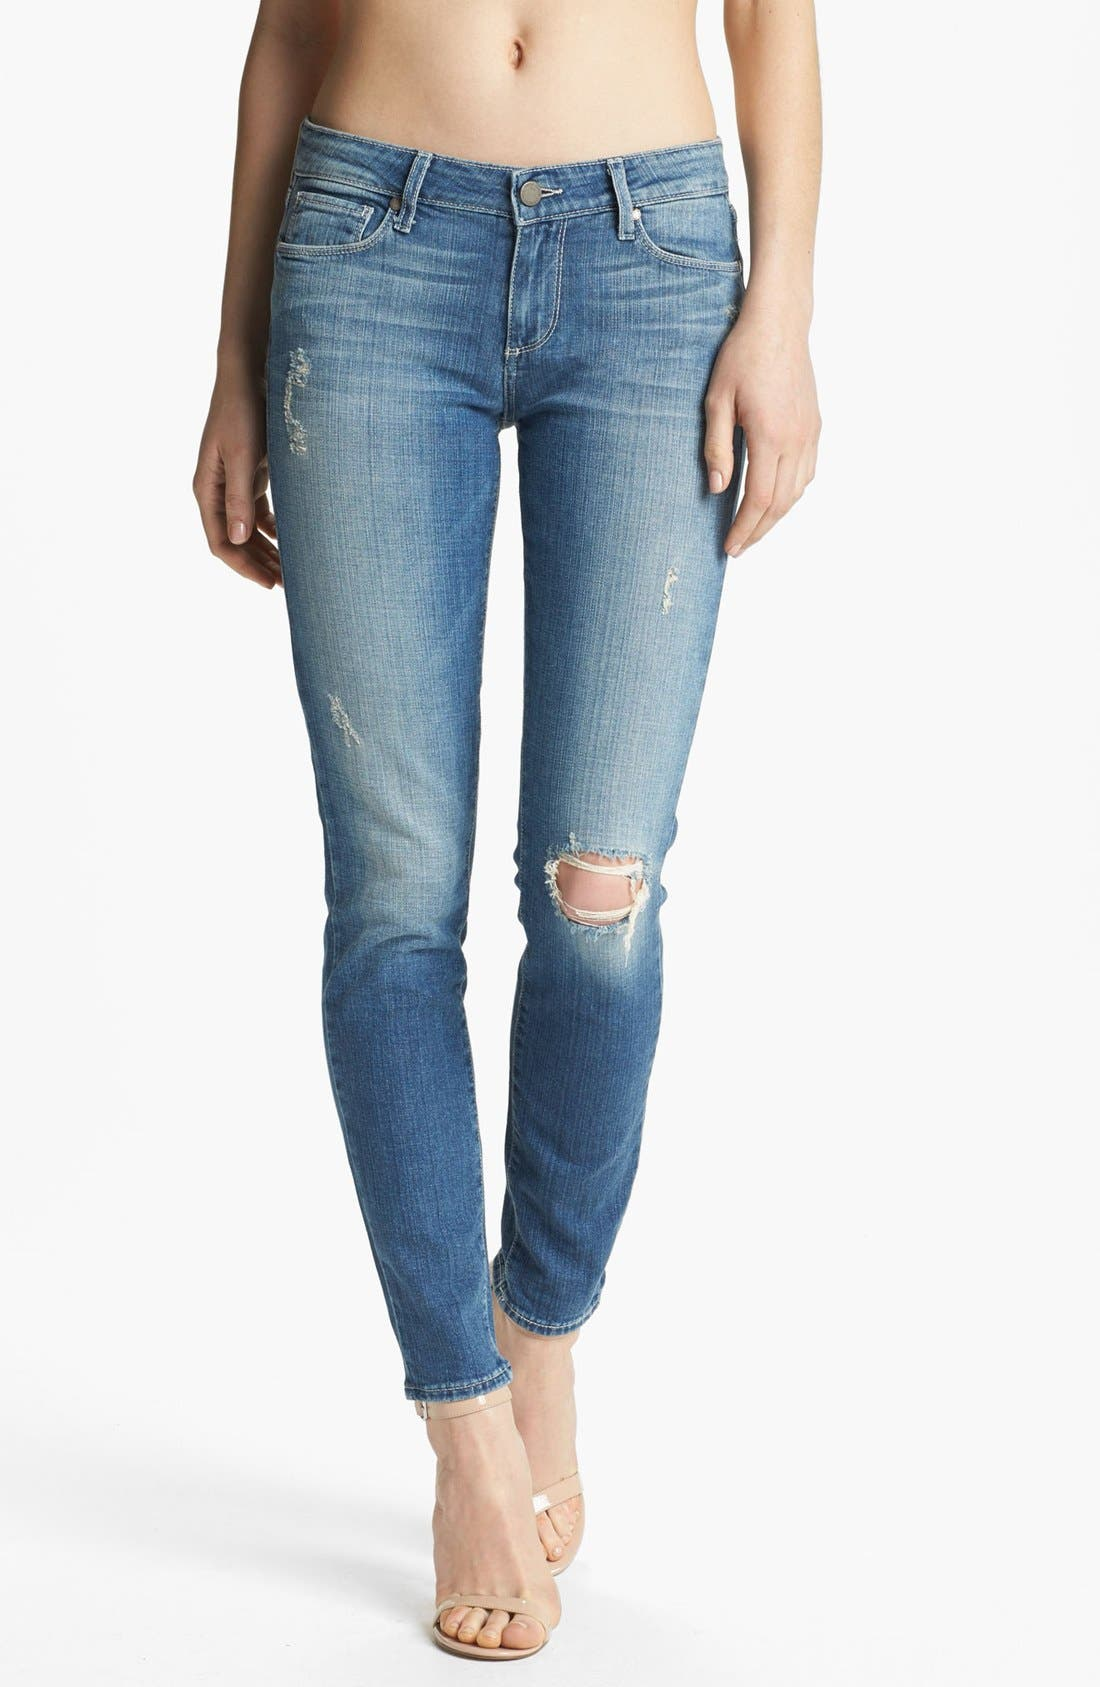 Alternate Image 1 Selected - Paige Denim 'Verdugo' Ultra Skinny Jeans (Lynn Destructed)